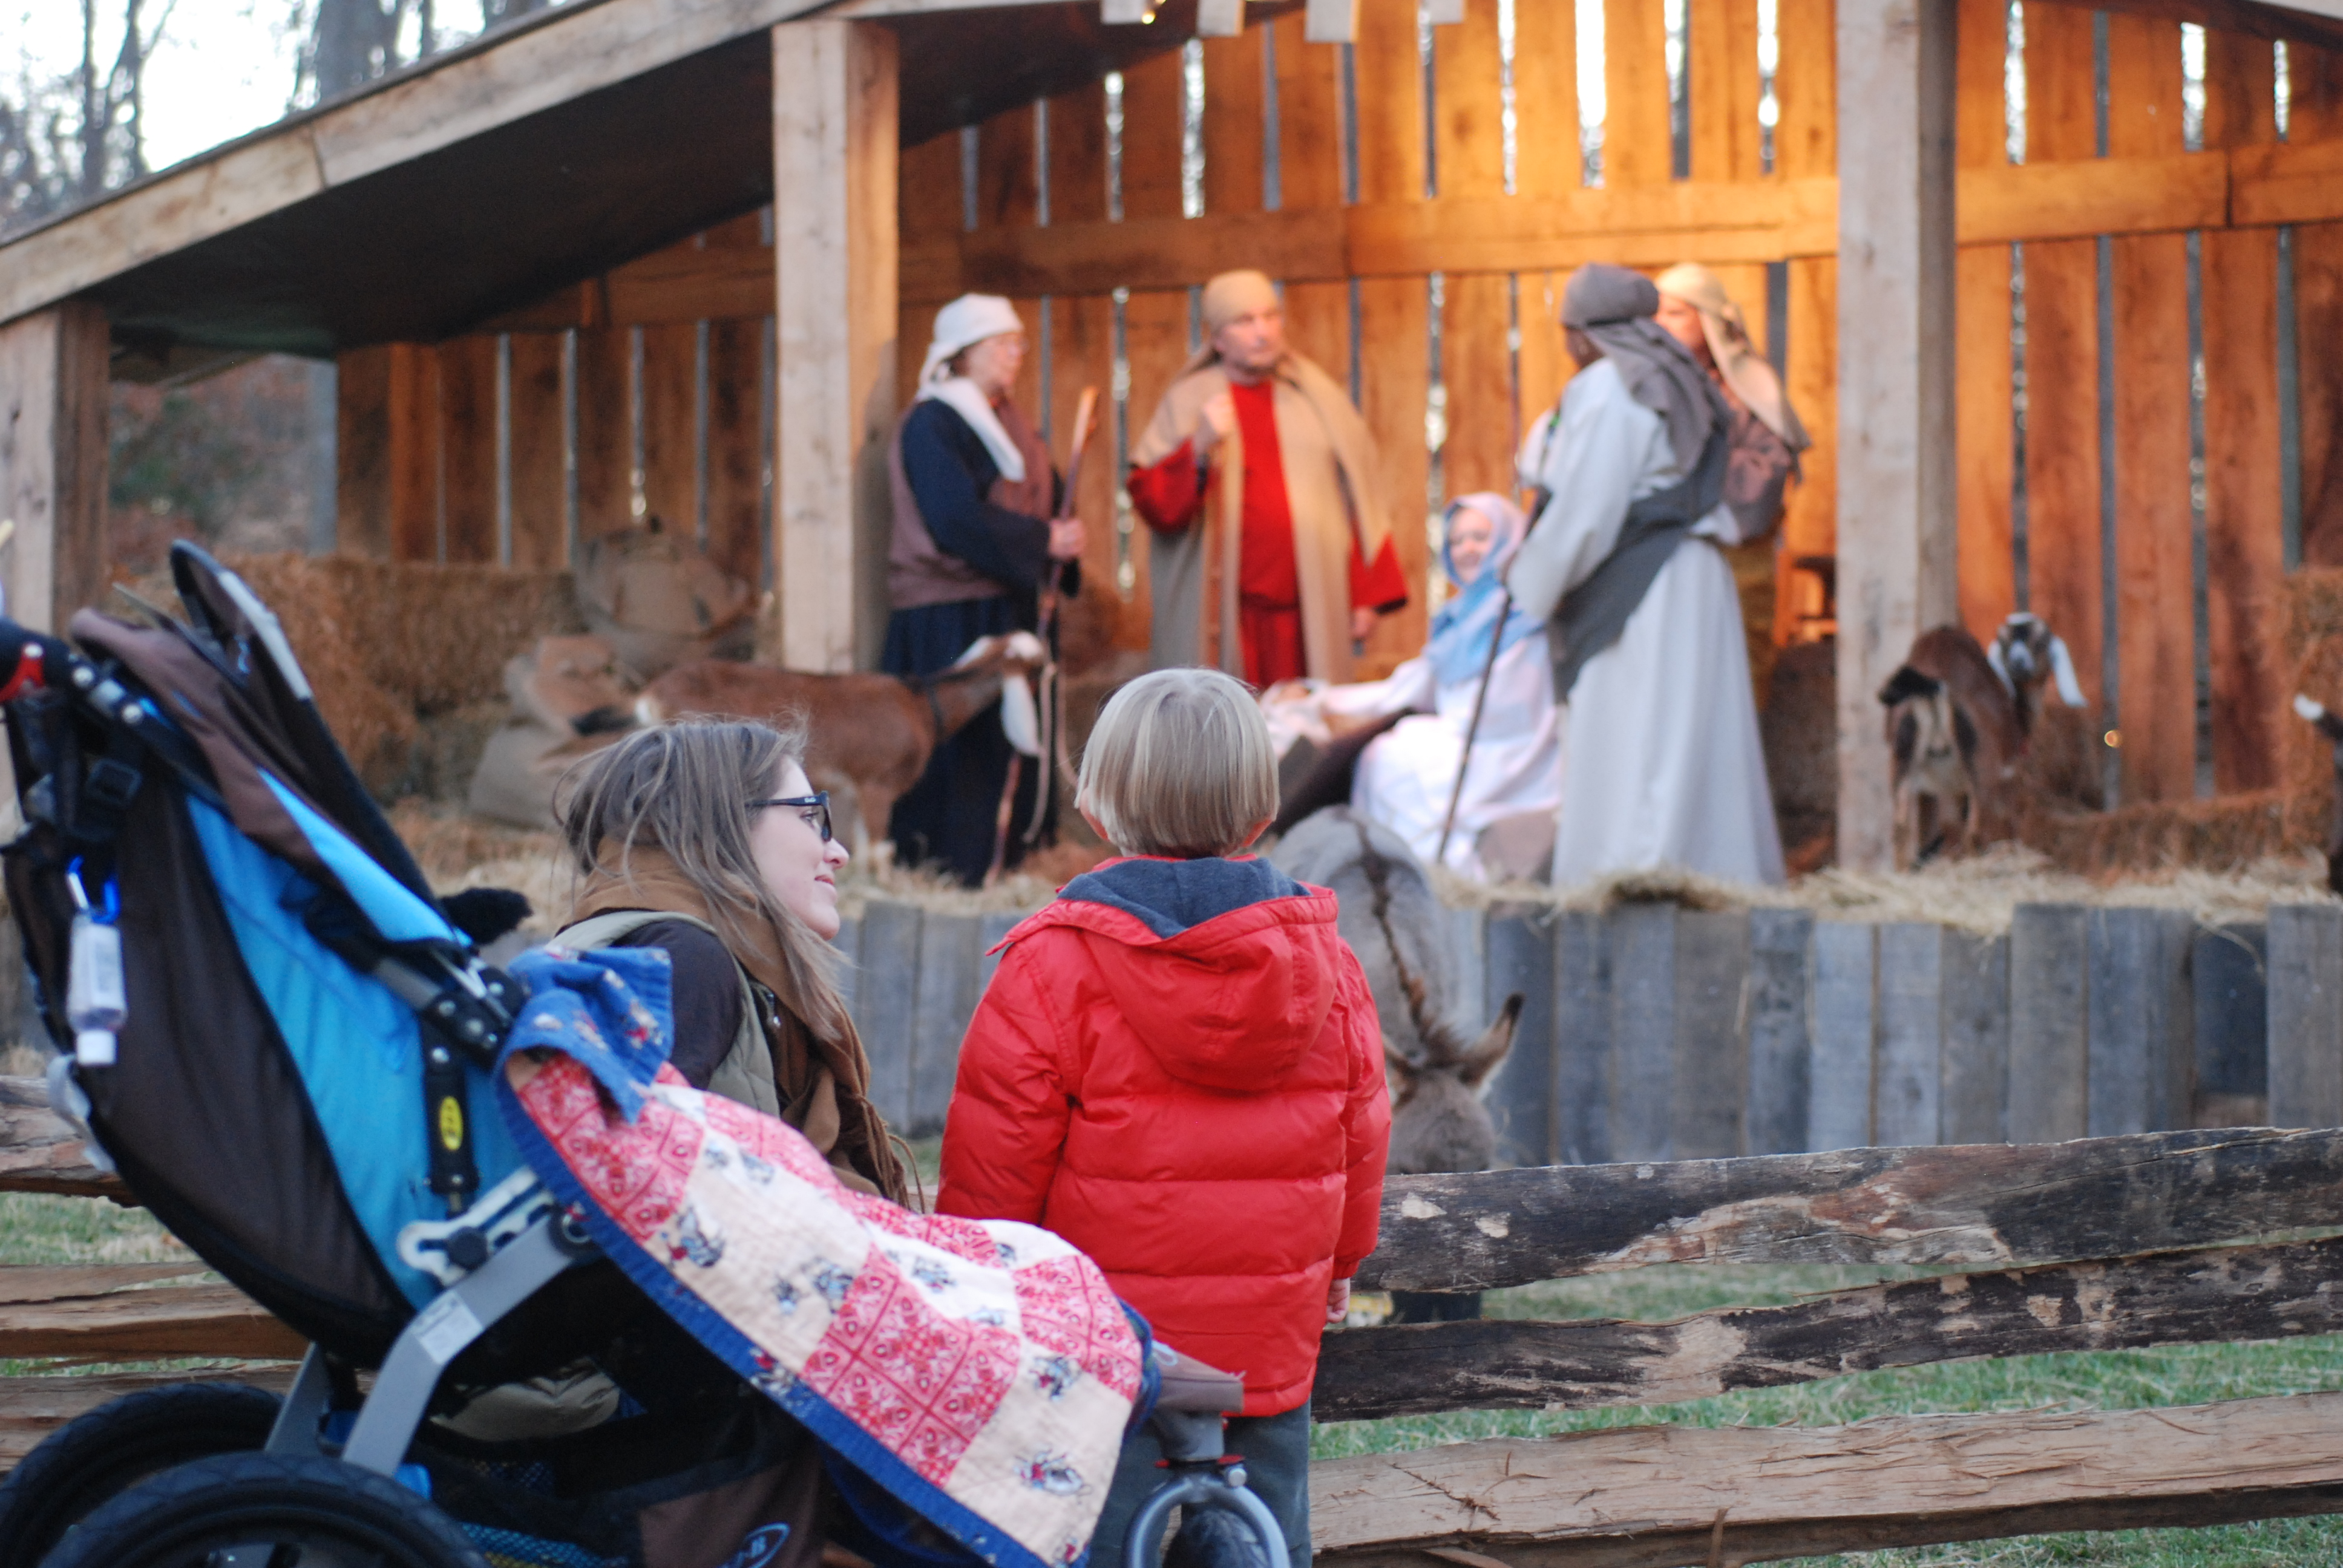 LIVE Nativity Scene at Billy Graham Library